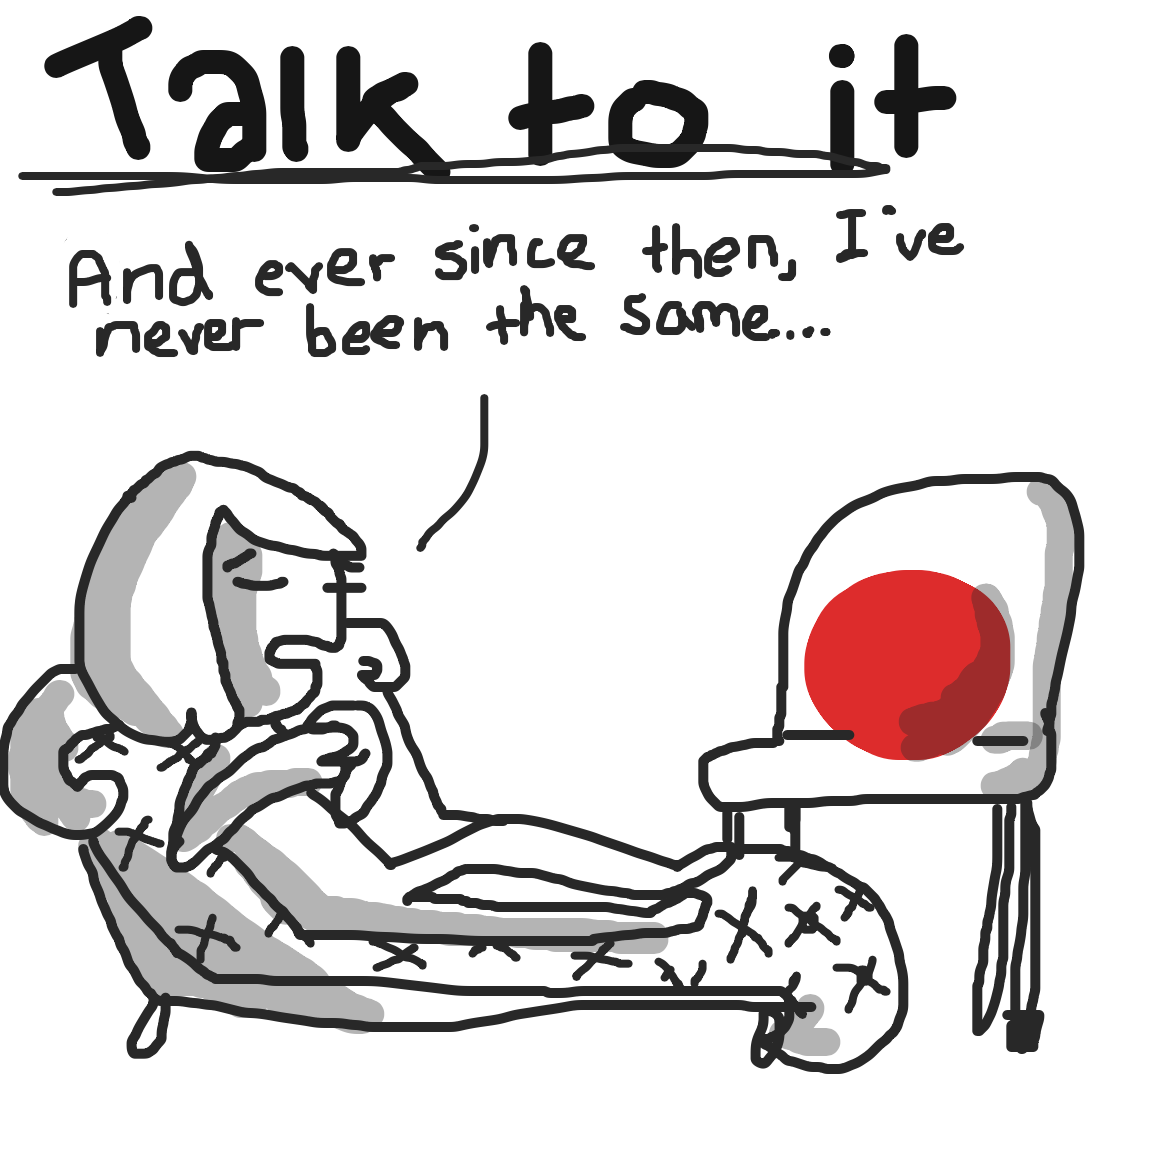 - Online Drawing Game Comic Strip Panel by unfortunate fool